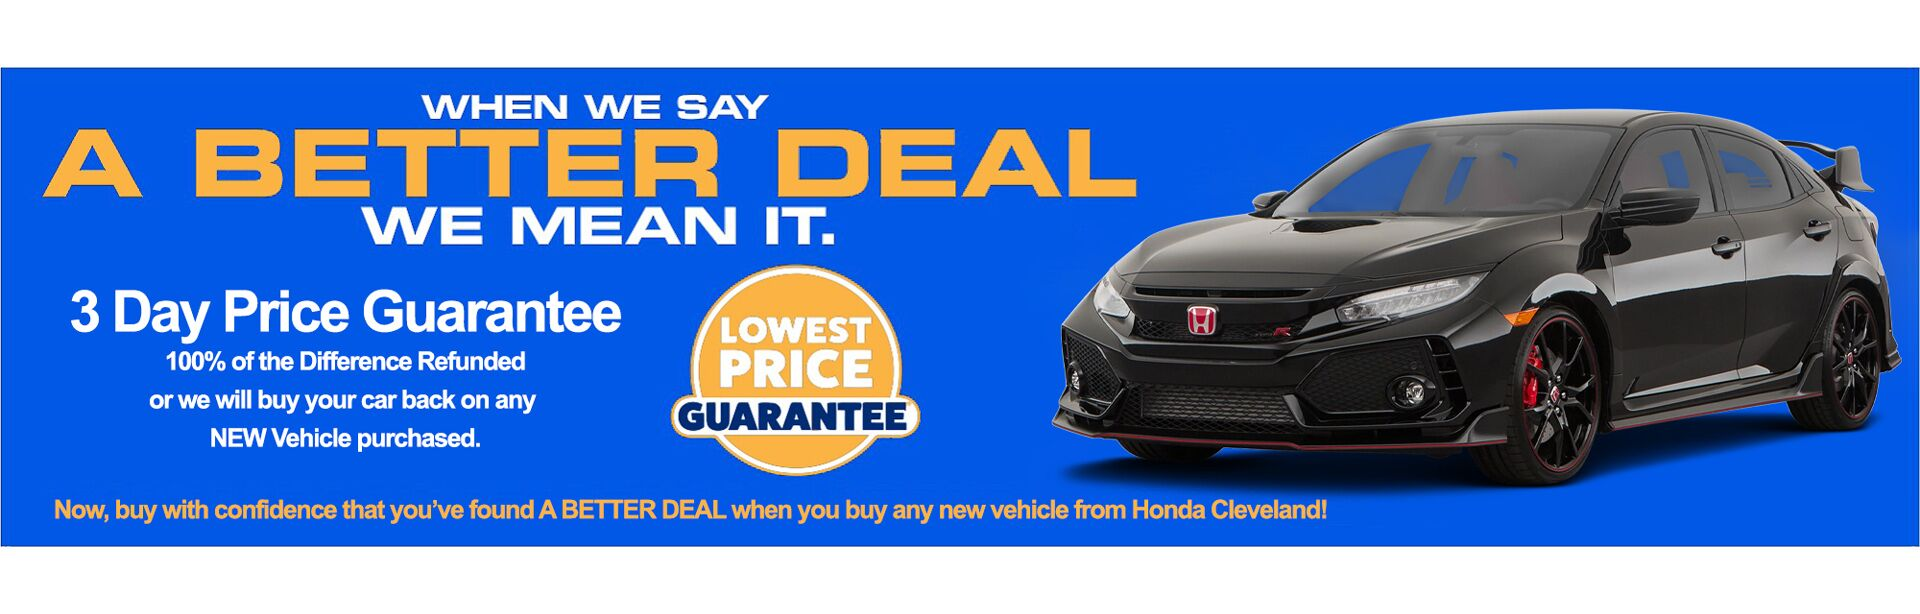 Honda Dealers Cleveland >> Honda Dealership Chattanooga Tn New And Used Cars Honda Of Cleveland